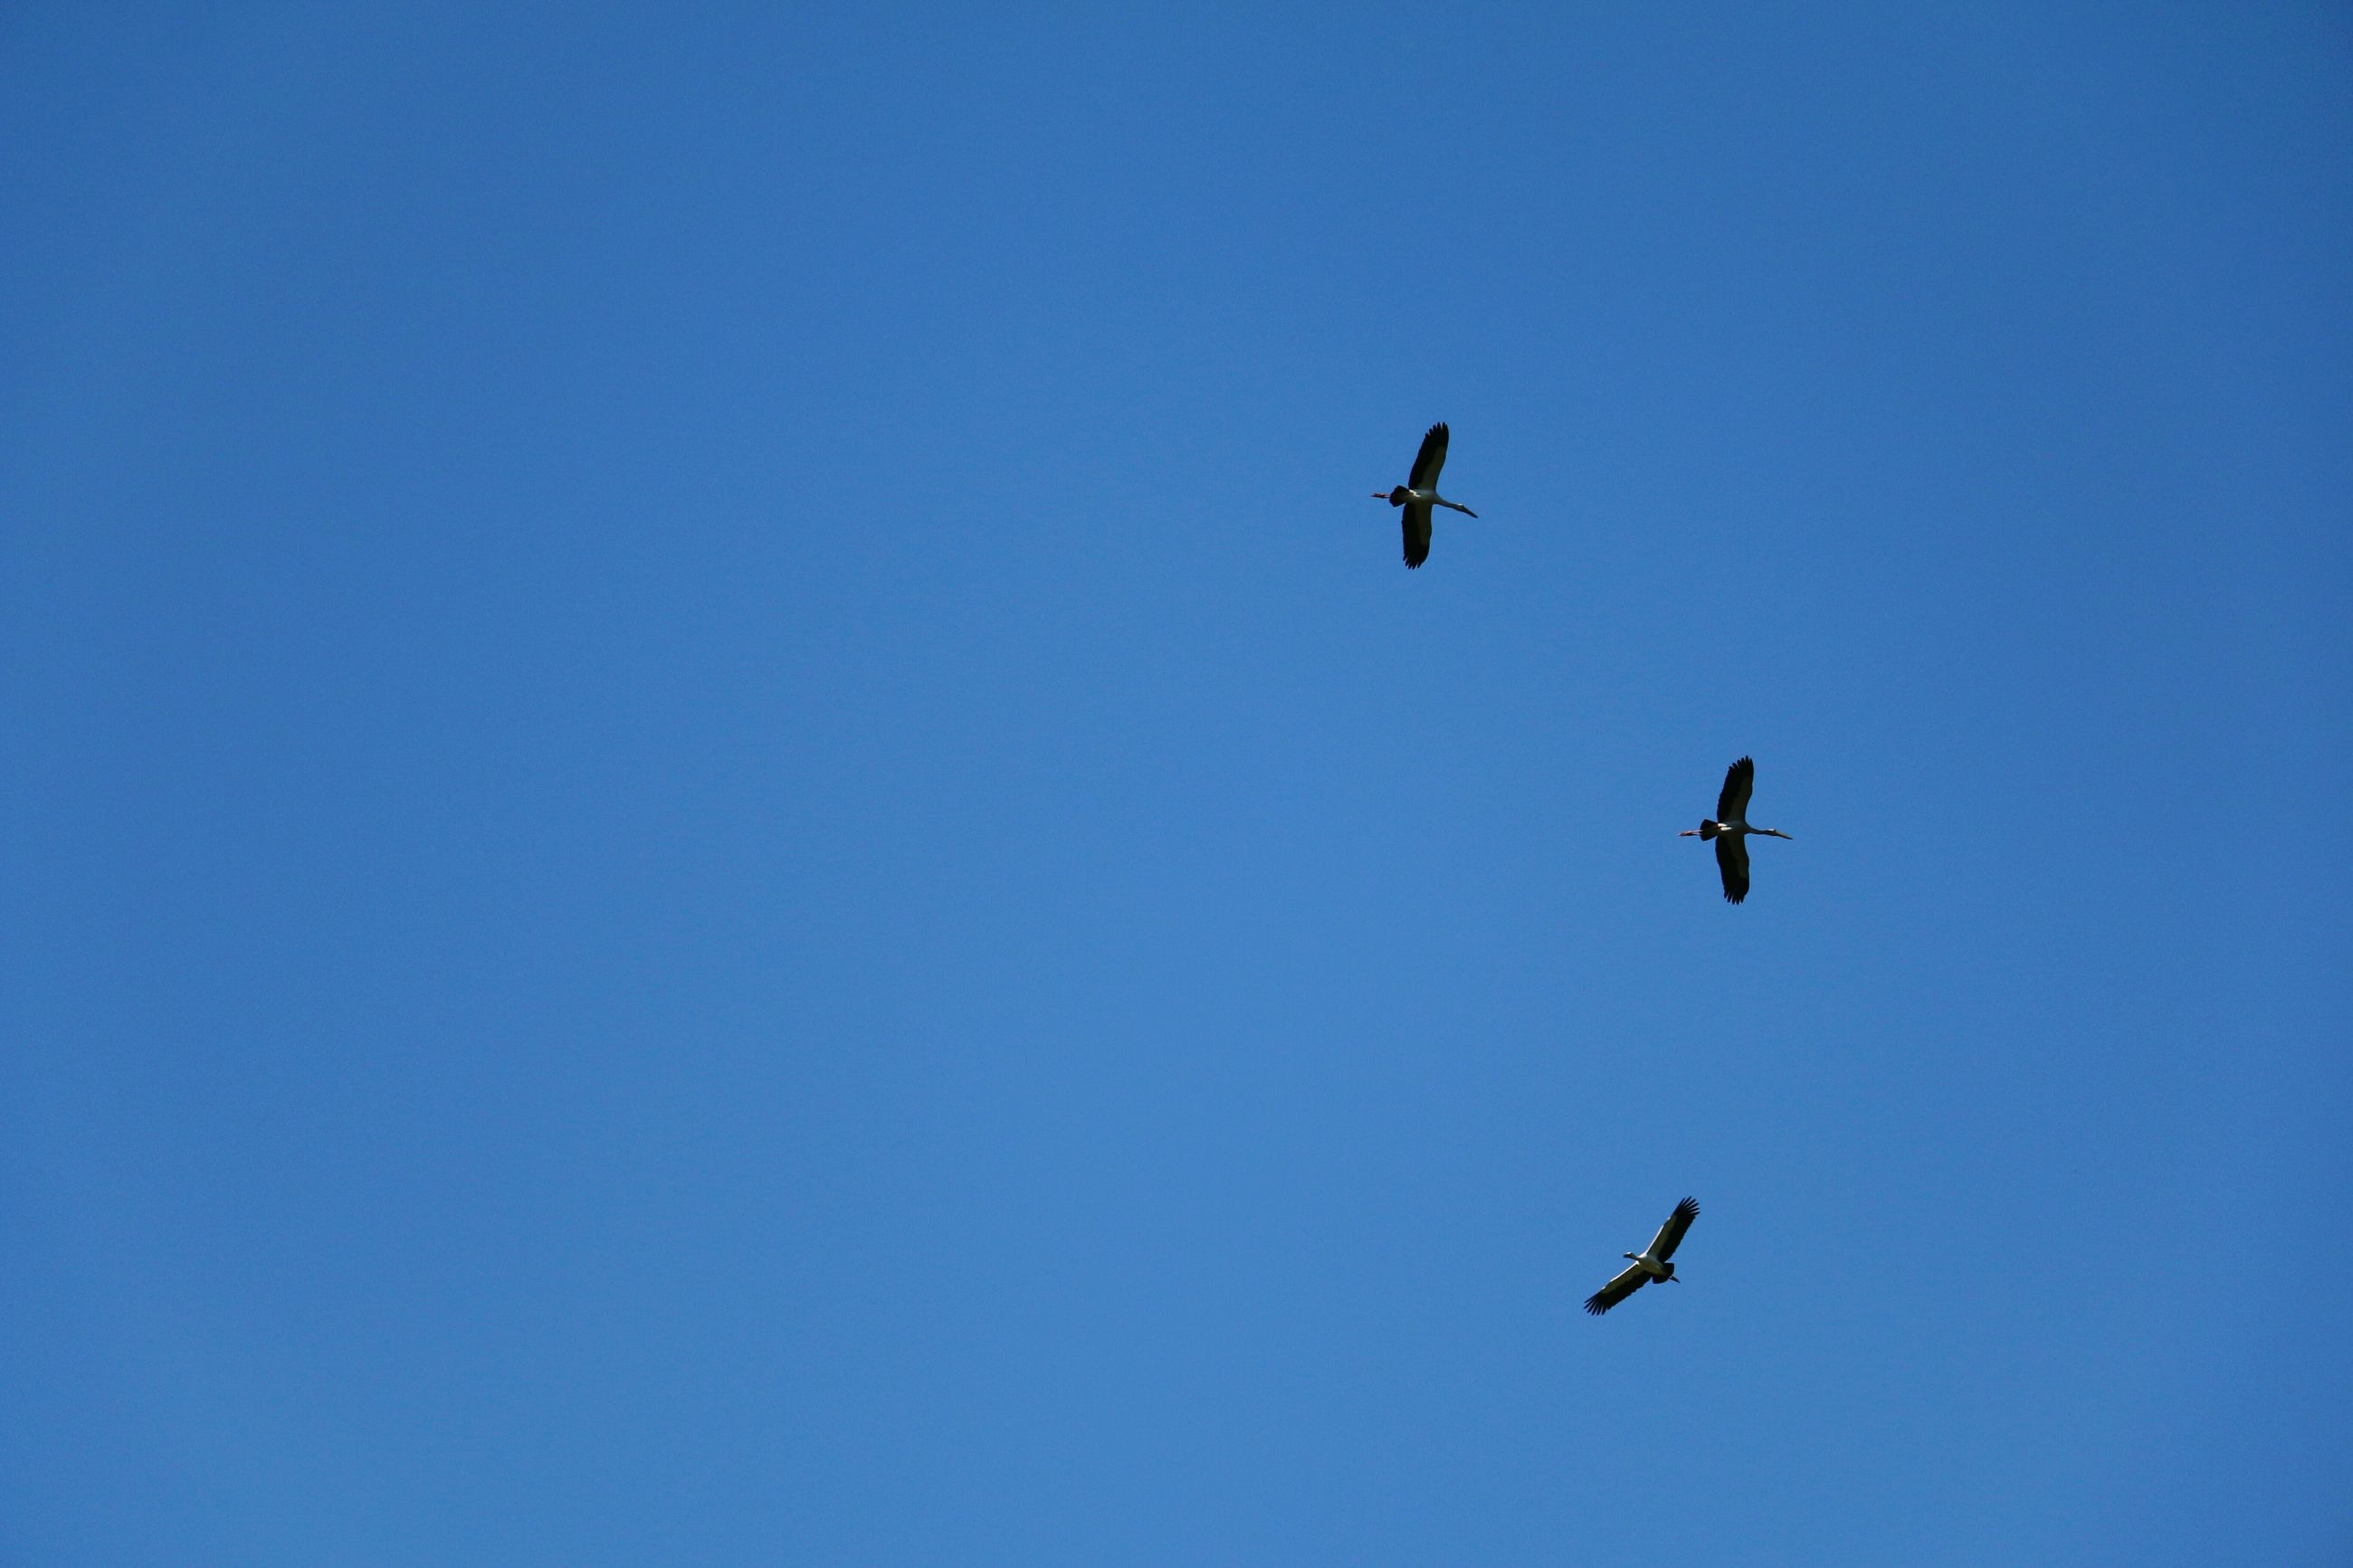 flying, mid-air, low angle view, blue, spread wings, freedom, nature, outdoors, day, sky, no people, beauty in nature